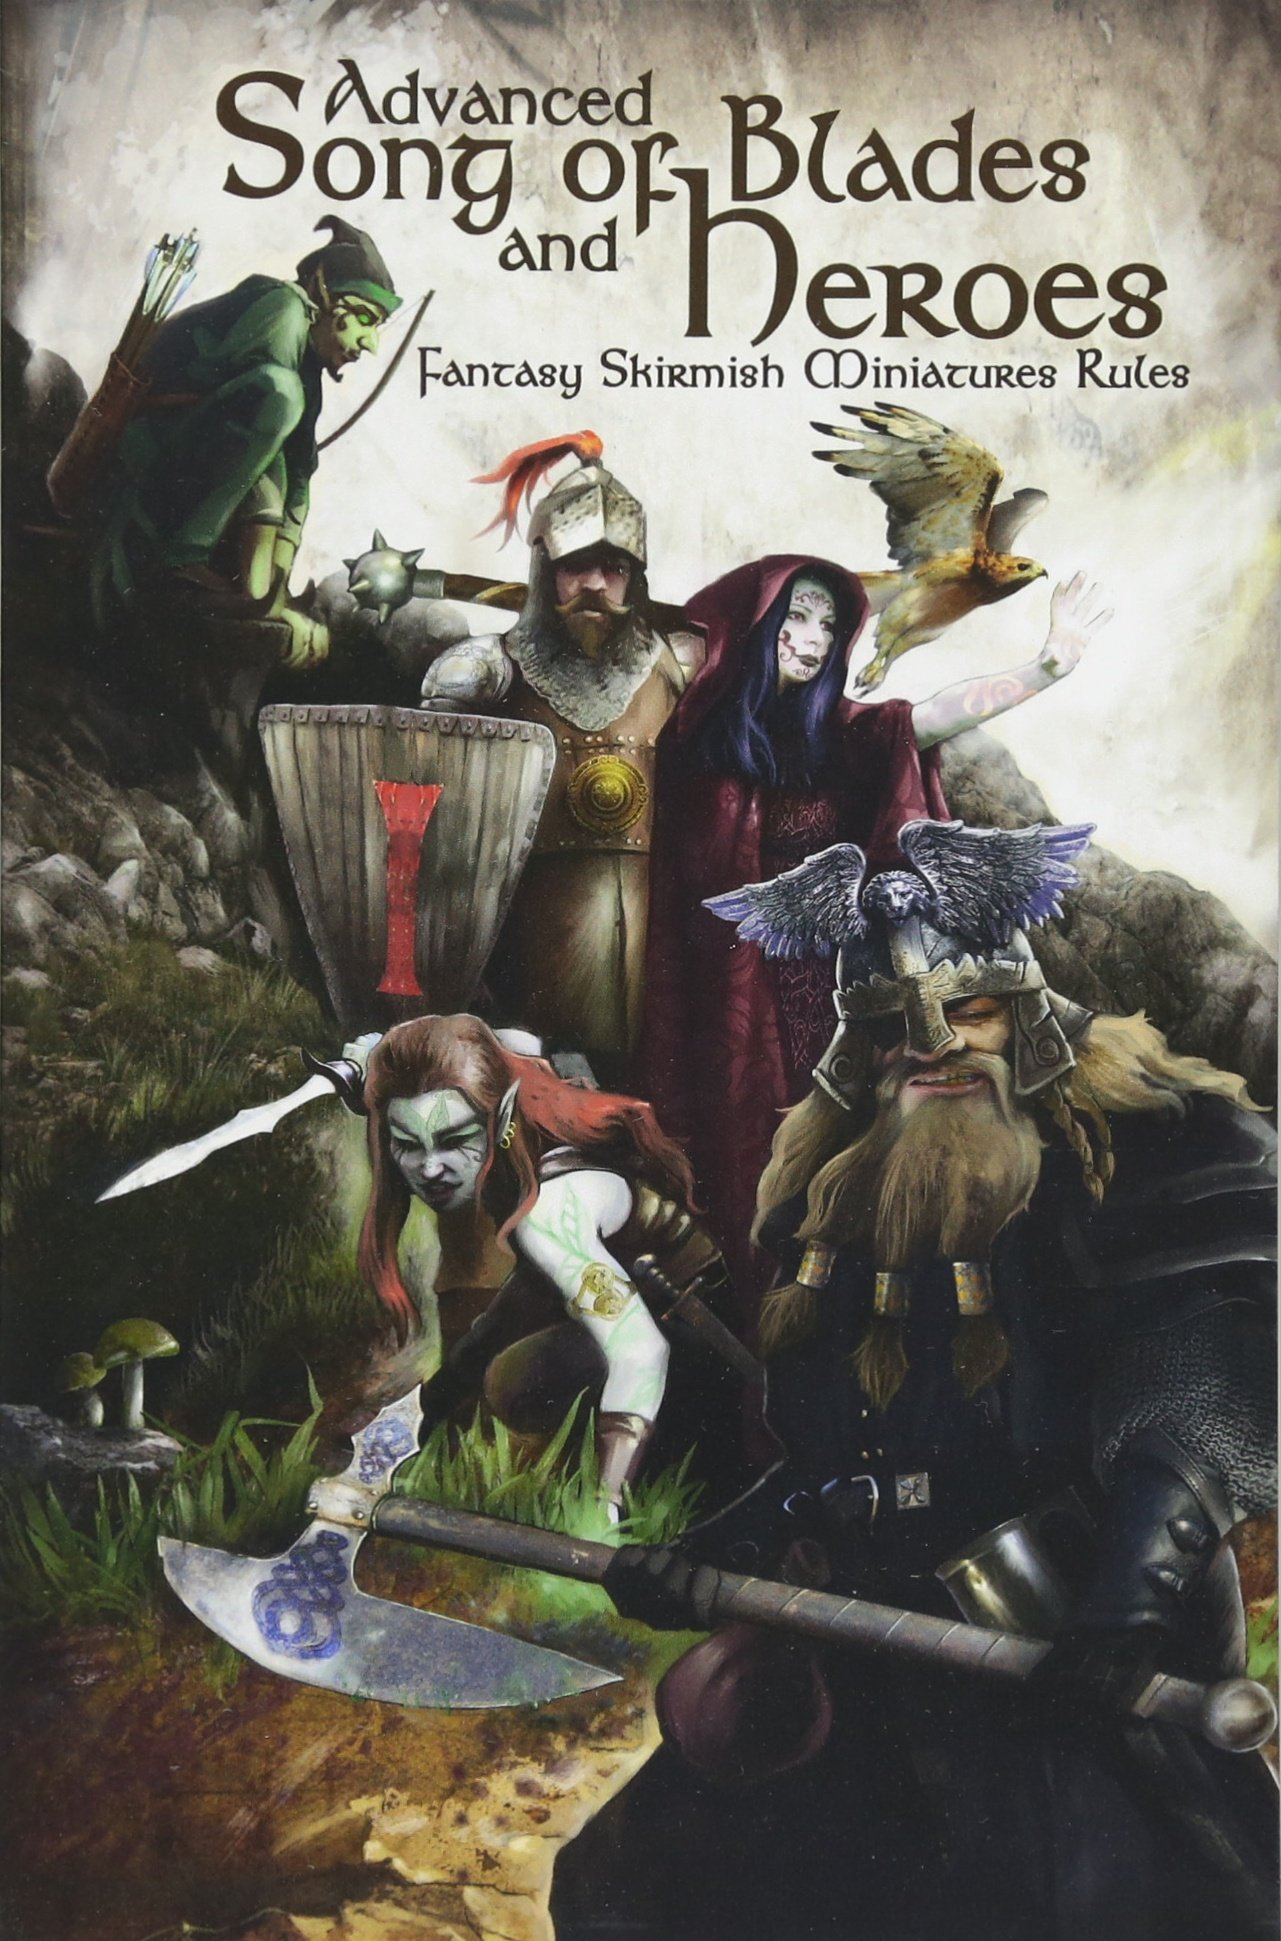 Advanced Song of Blades and Heroes: Fantasy Skirmish Miniatures